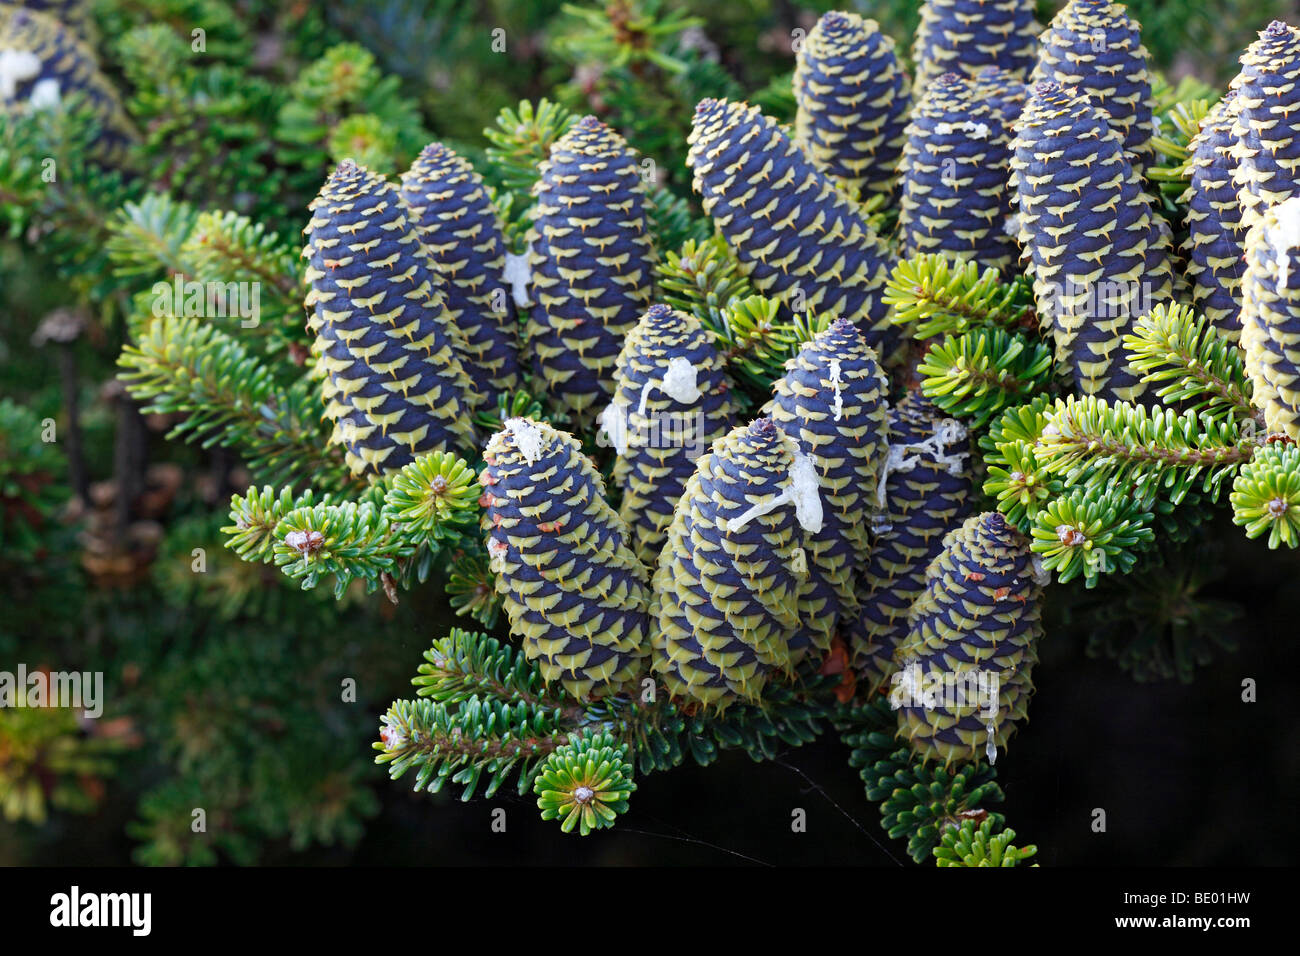 Korean Fir (Abies koreana), conifer branches with cones - Stock Image